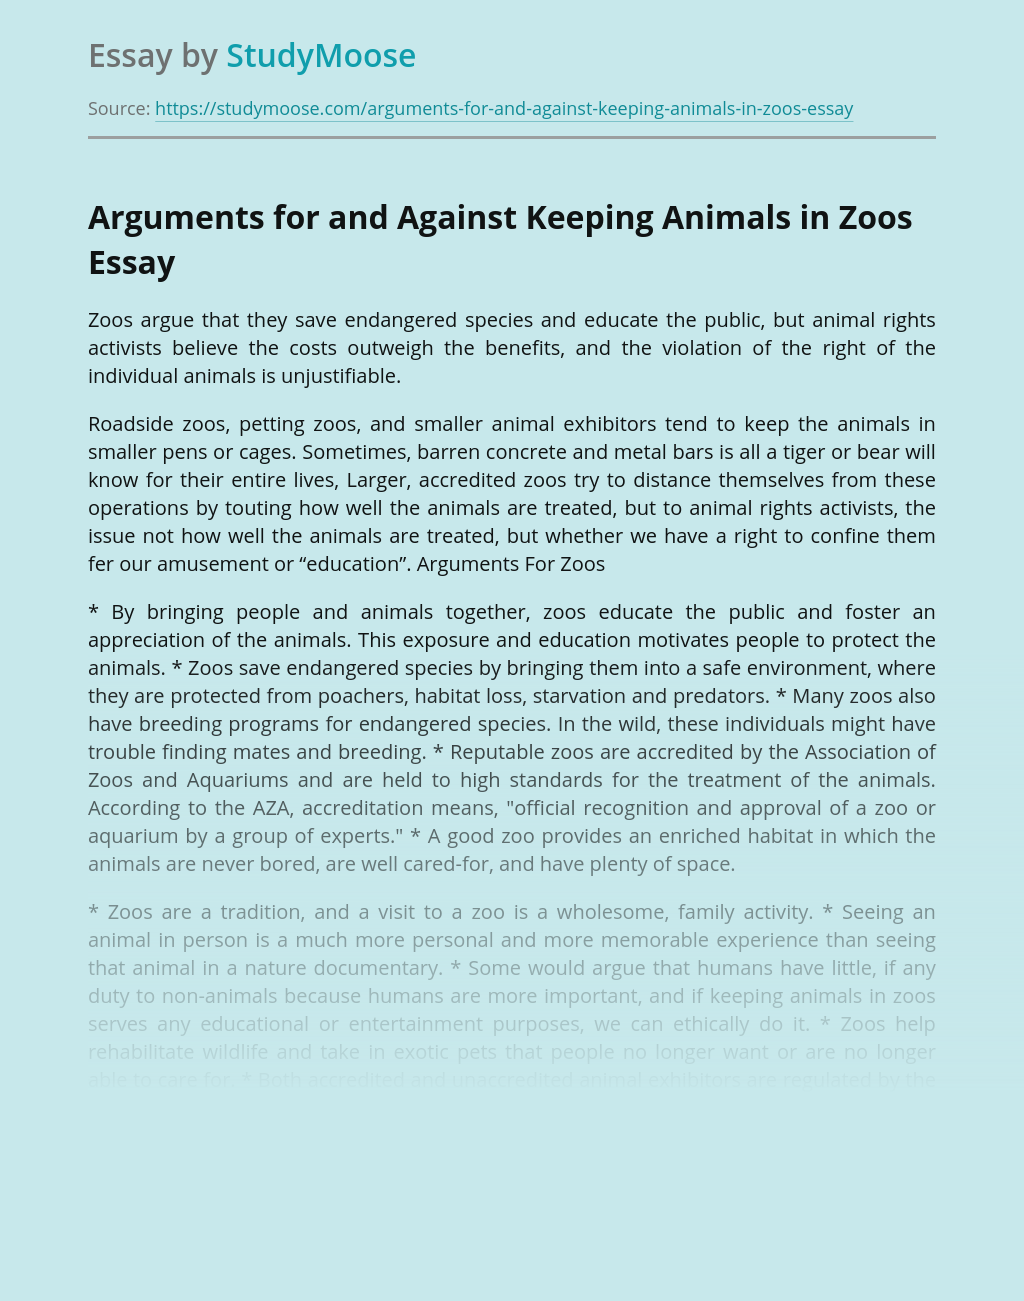 Arguments for and Against Keeping Animals in Zoos